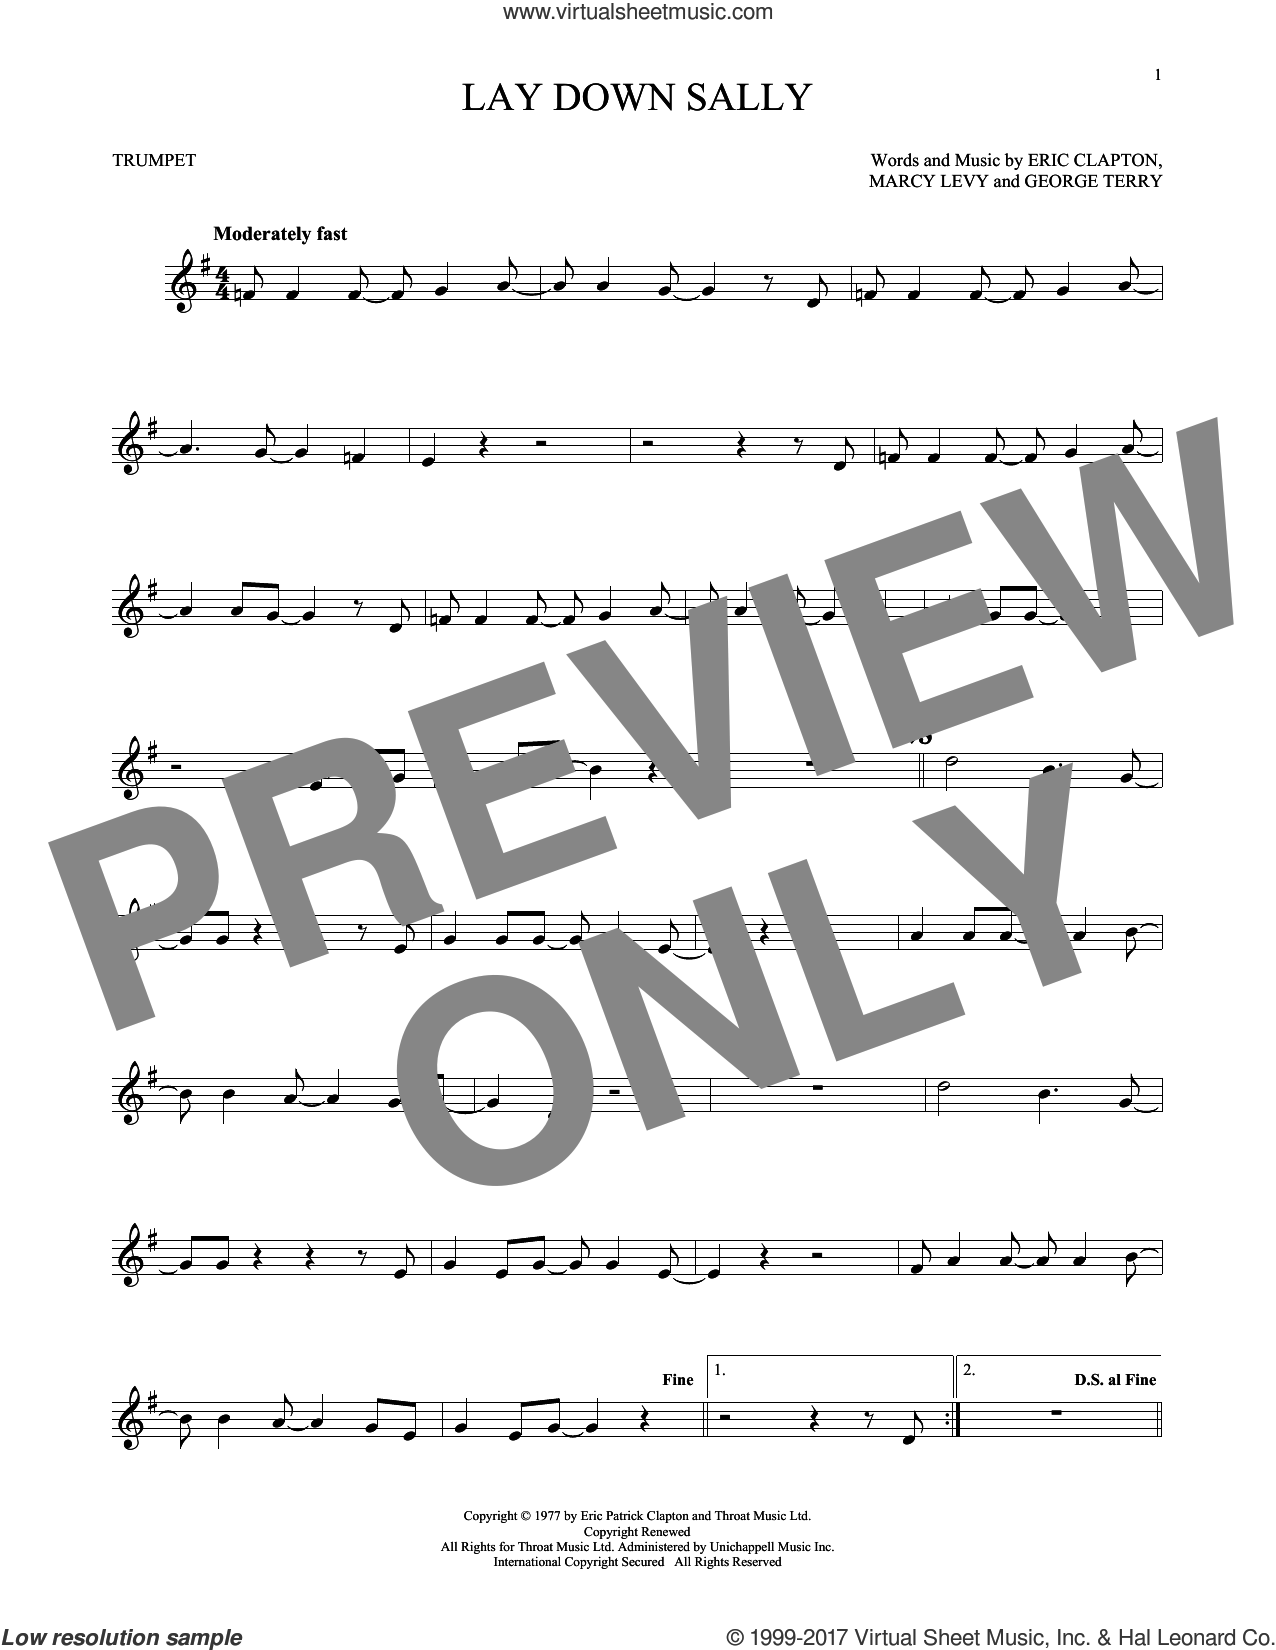 Lay Down Sally sheet music for trumpet solo by Eric Clapton, George Terry and Marcy Levy, intermediate skill level